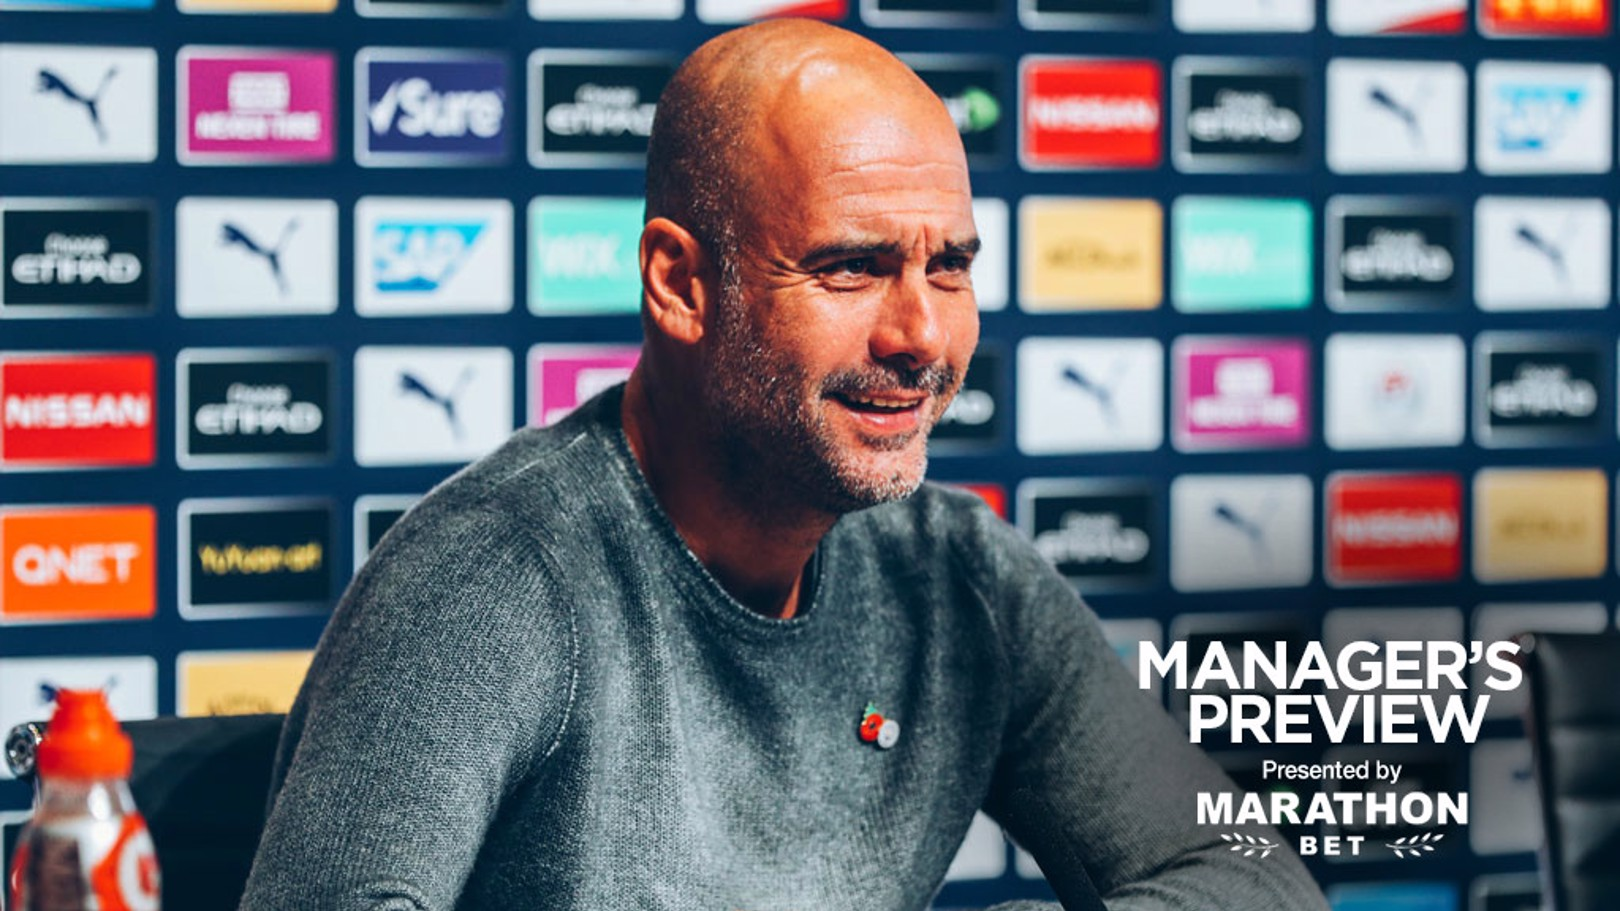 PRE-MATCH: Pep Guardiola speaks to the media ahead of City's game against Southampton.